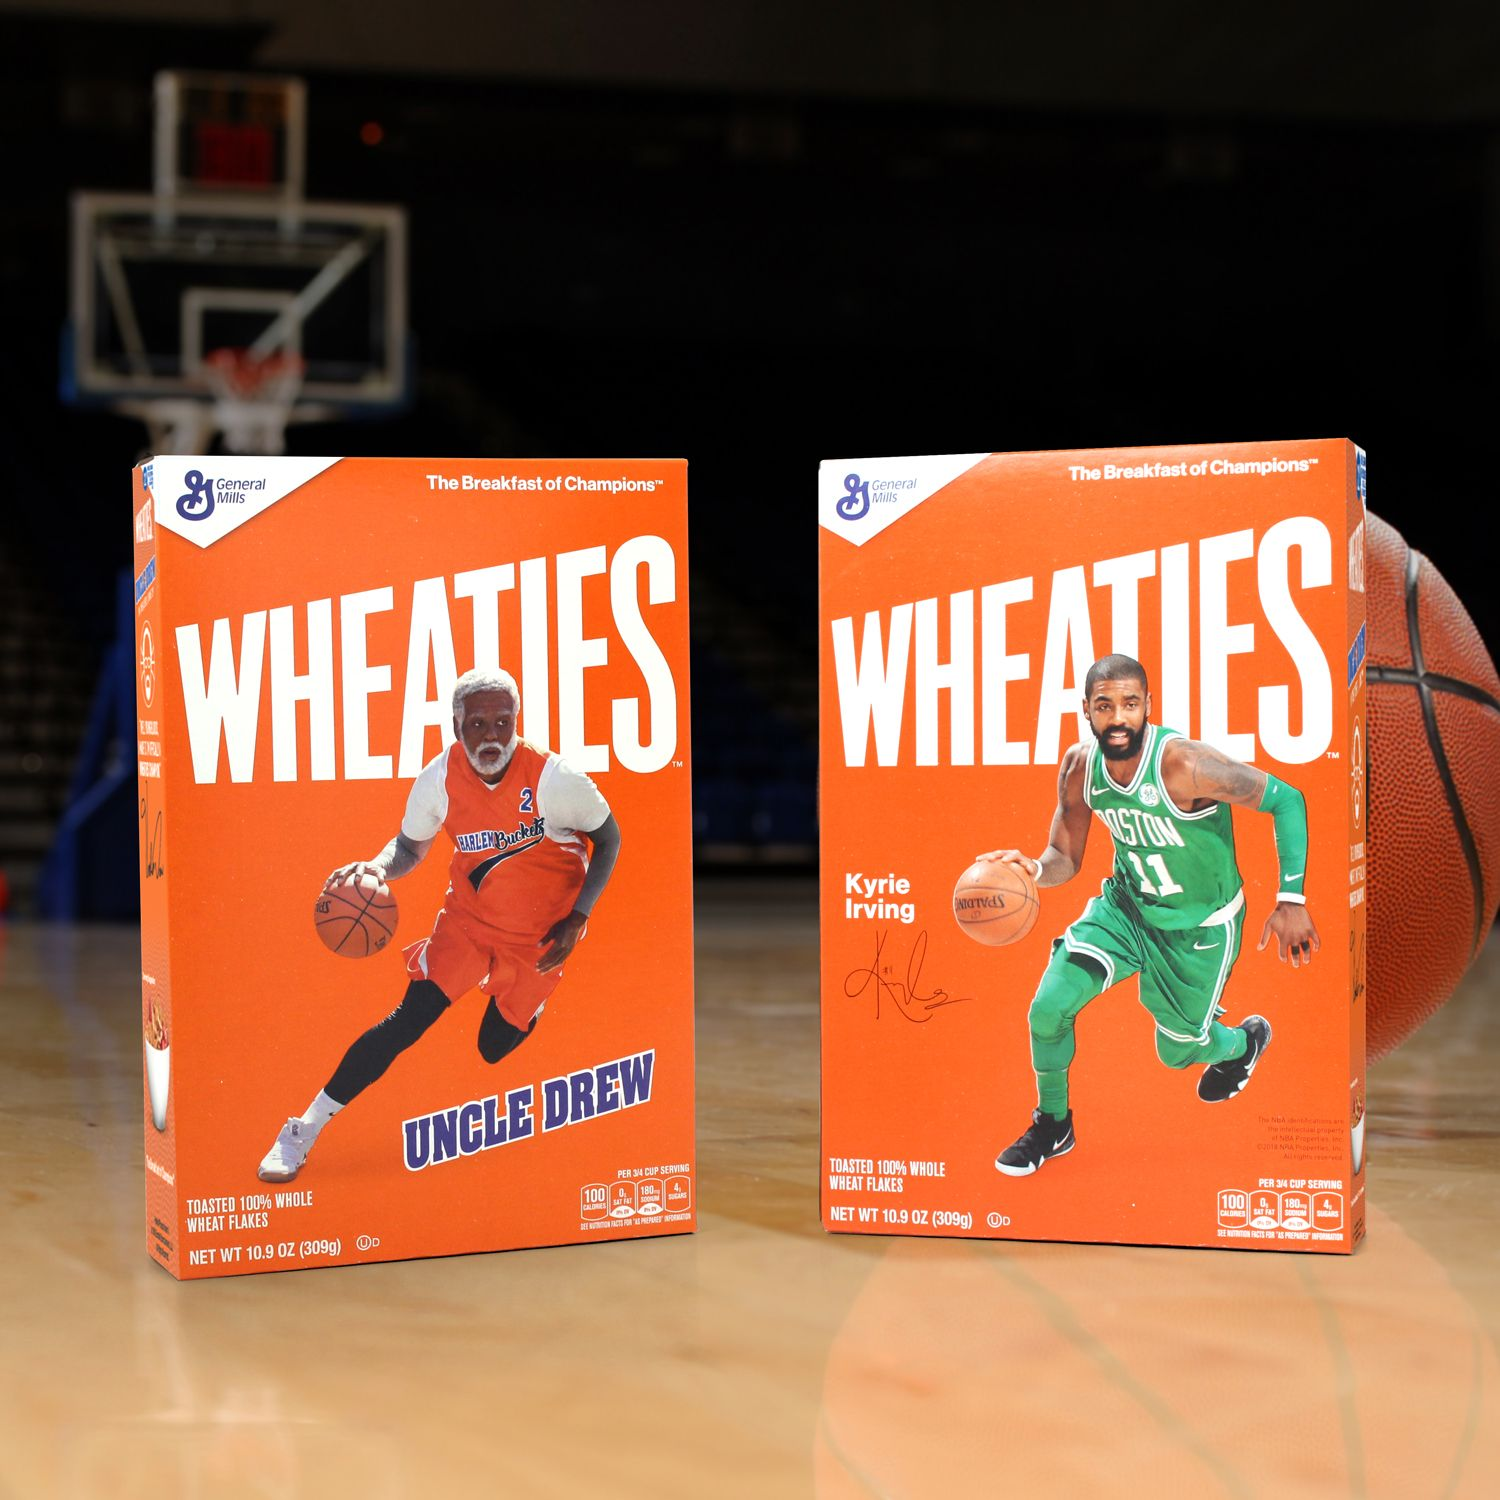 bd1bce0b4aac General Mills is stepping off the supermarket shelves and into House of  Hoops and Foot Lockers all across America this week in partnership with Nike  and ...